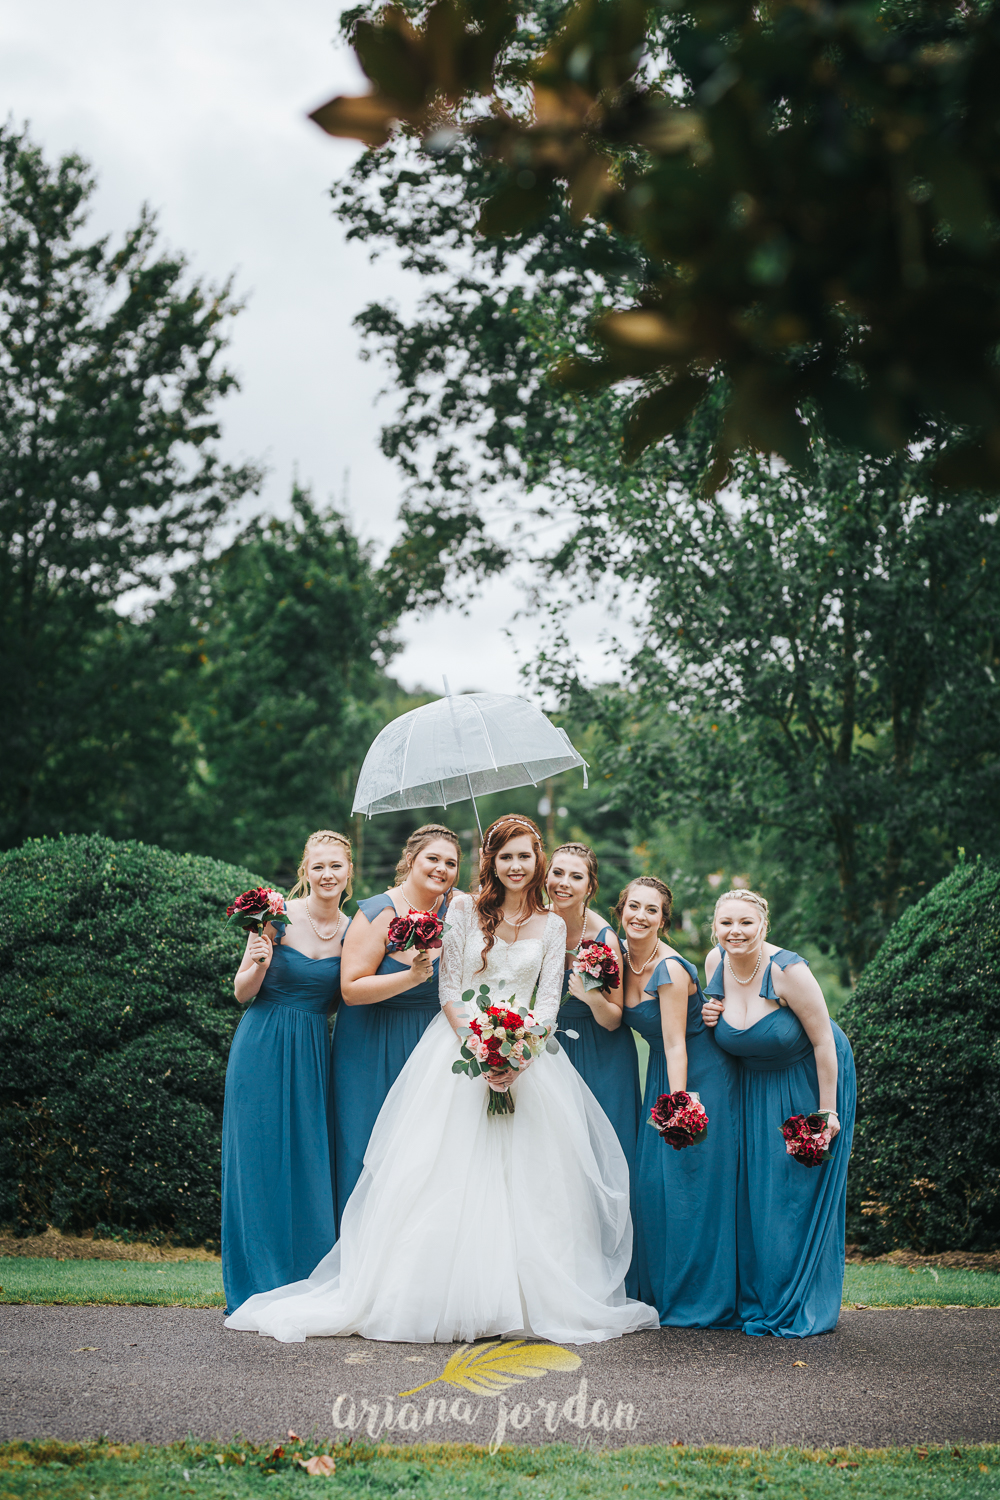 107 - Ariana Jordan - Kentucky Wedding Photographer - Landon & Tabitha_.jpg